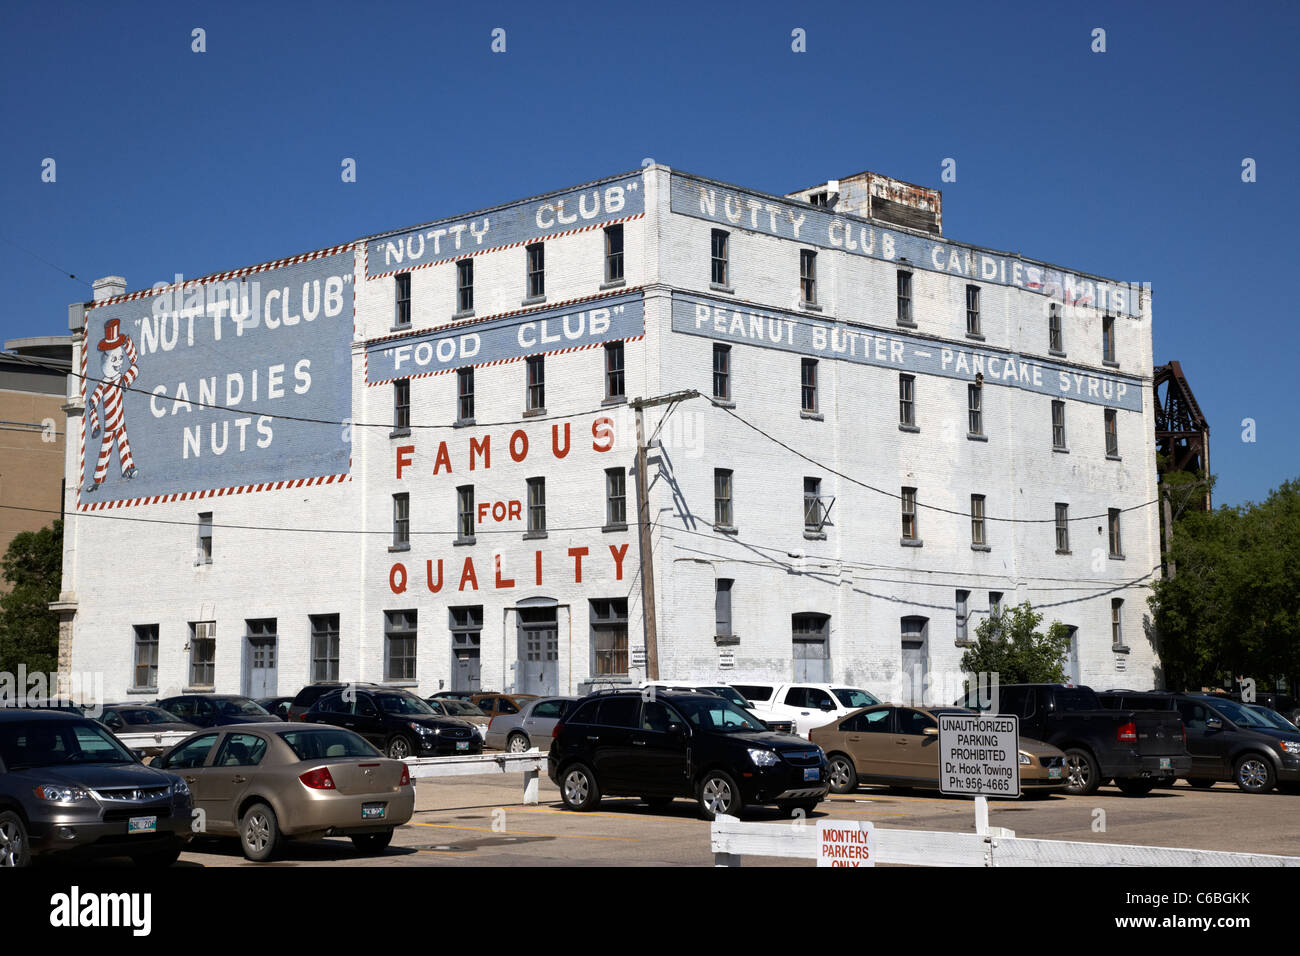 nutty club warehouse scott bathgate ltd building downtown winnipeg manitoba canada 149 pioneer ave - Stock Image